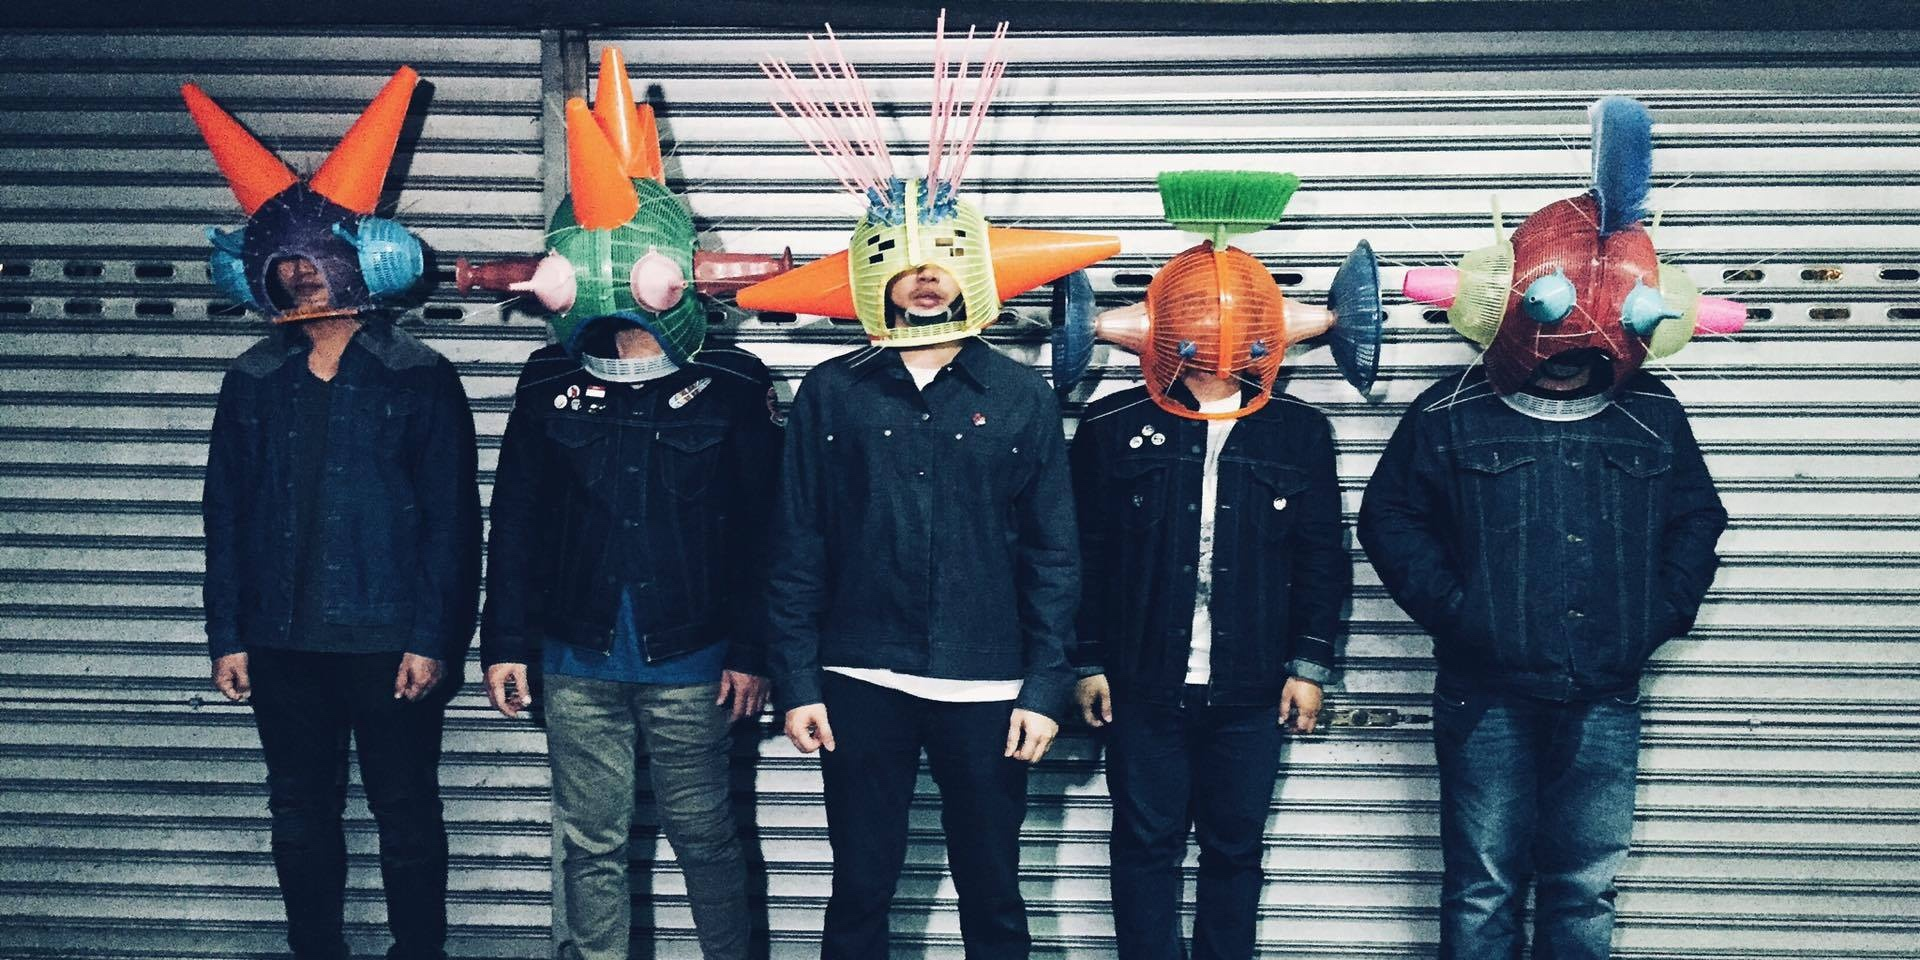 Pedicab stays one step ahead with new album, Remuda Triangle